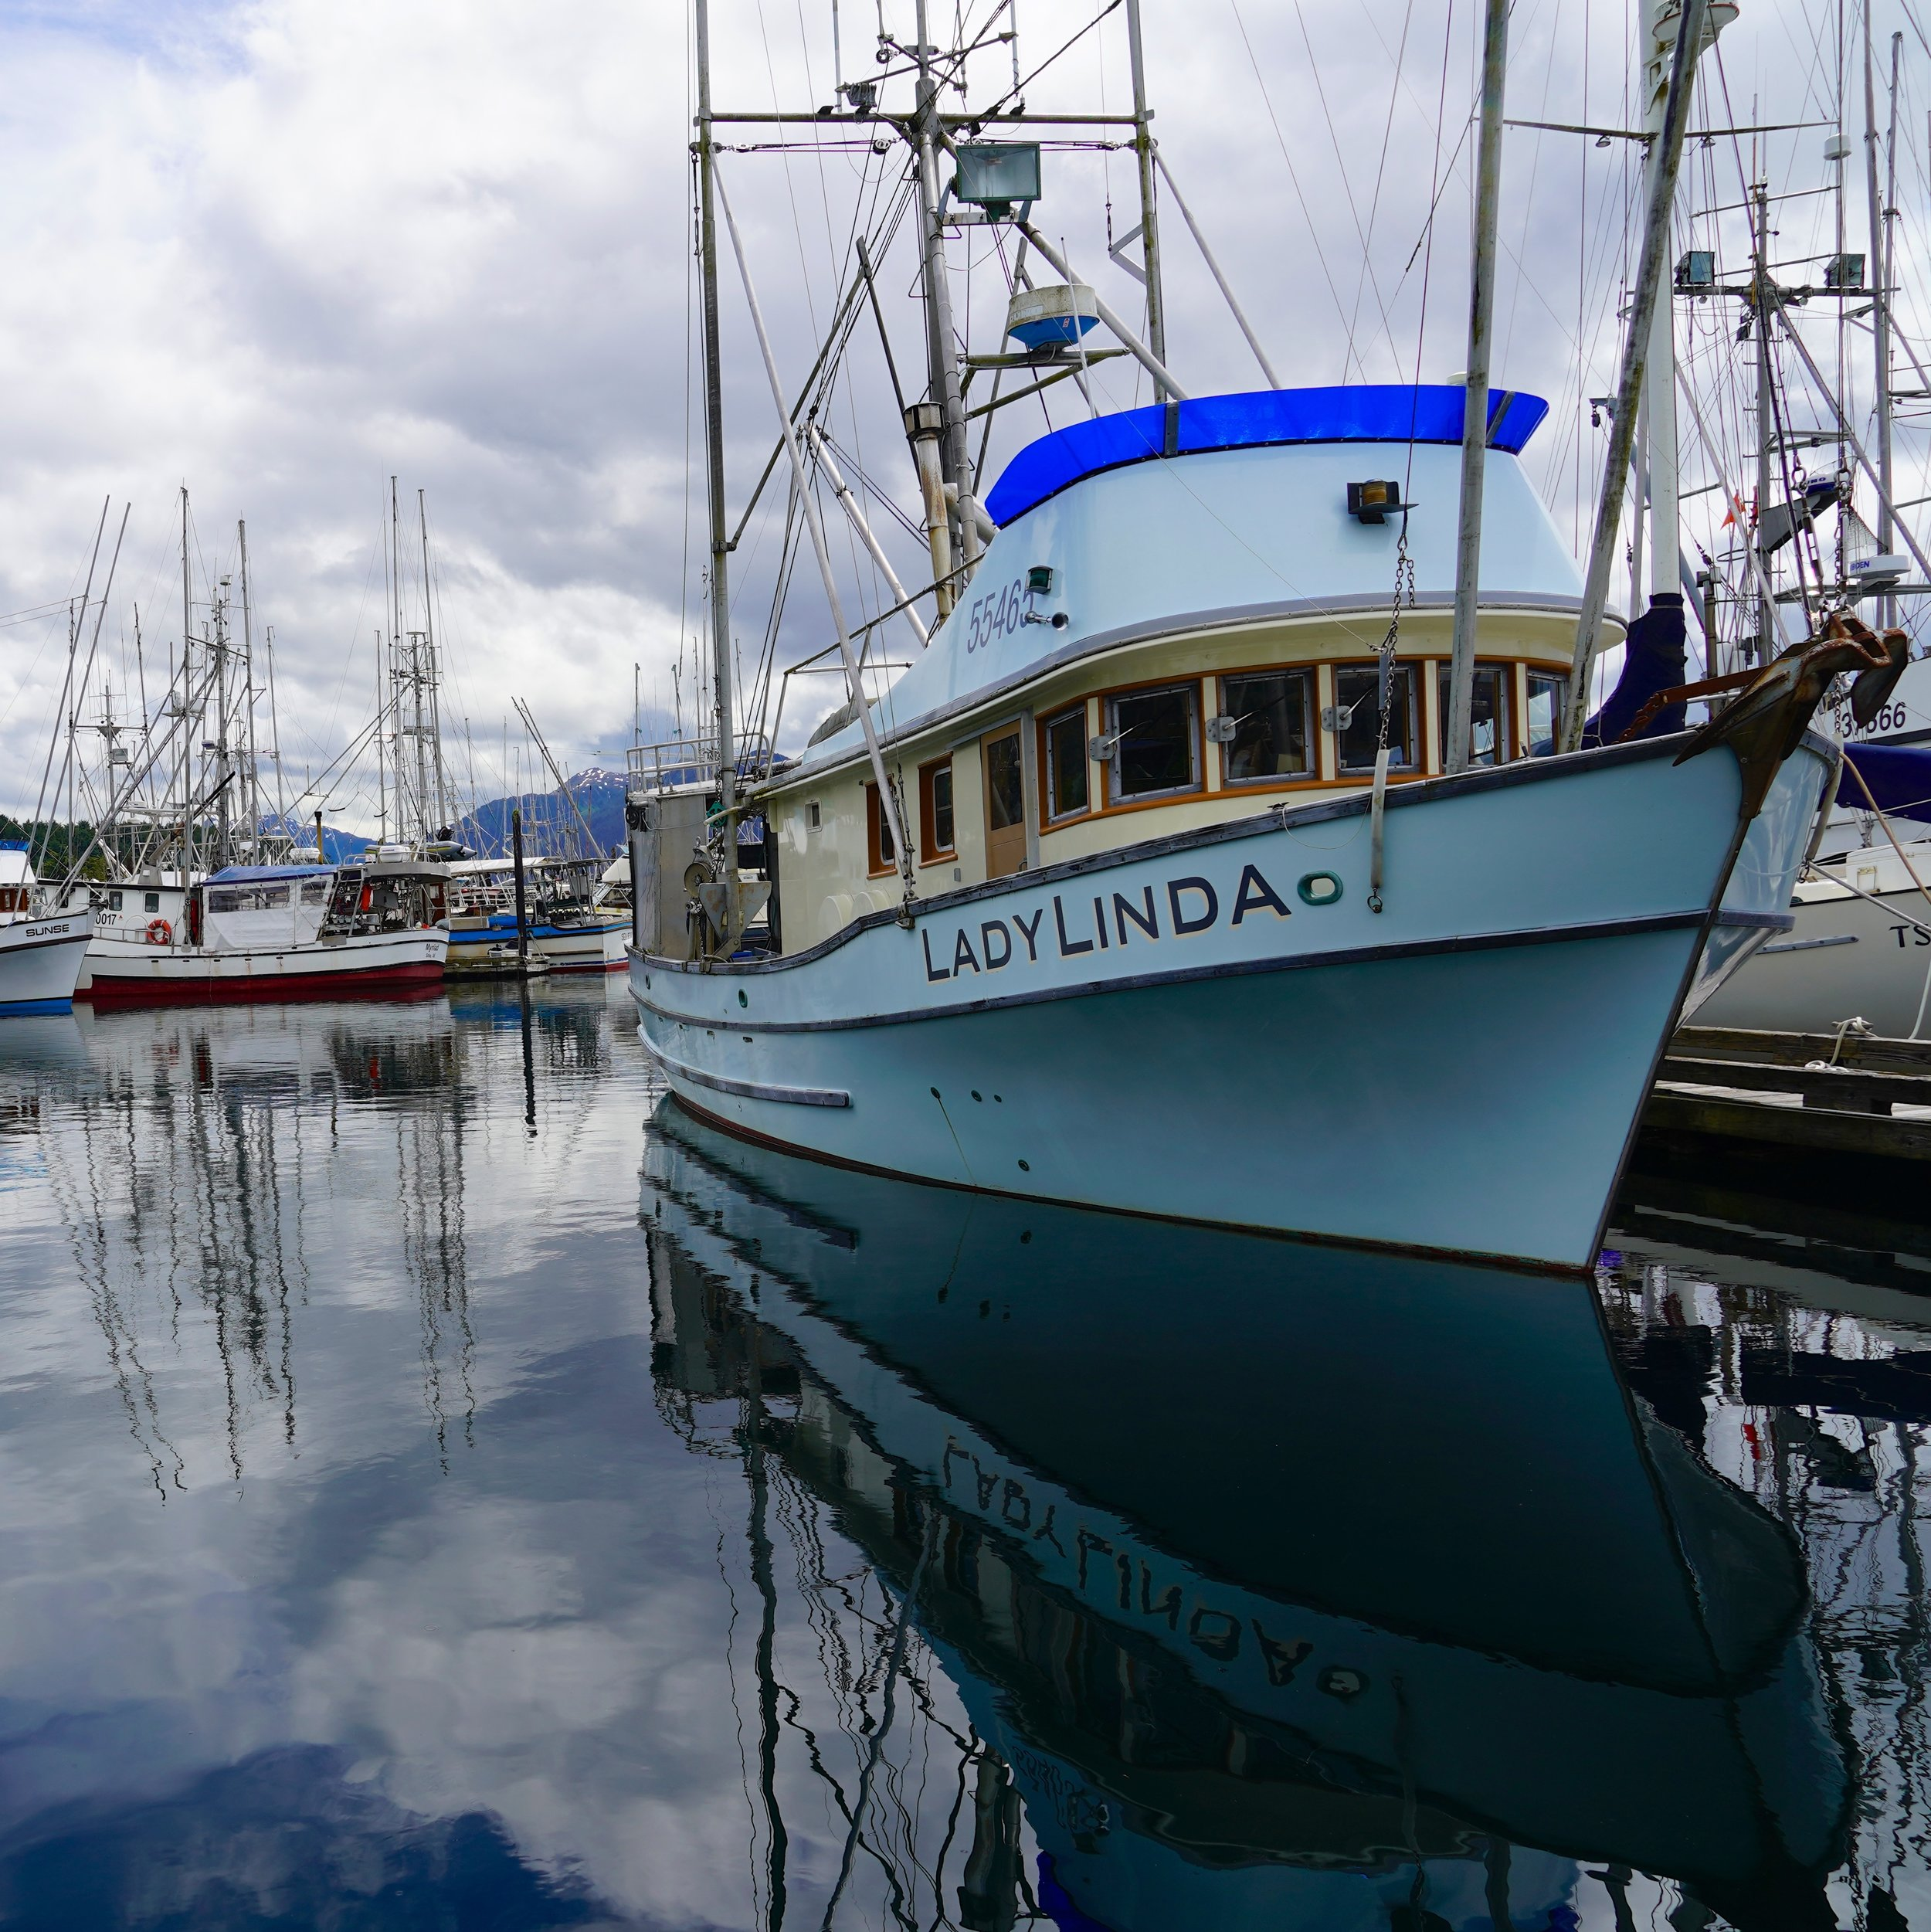 6-24-18 Fishing boat reflection.JPG